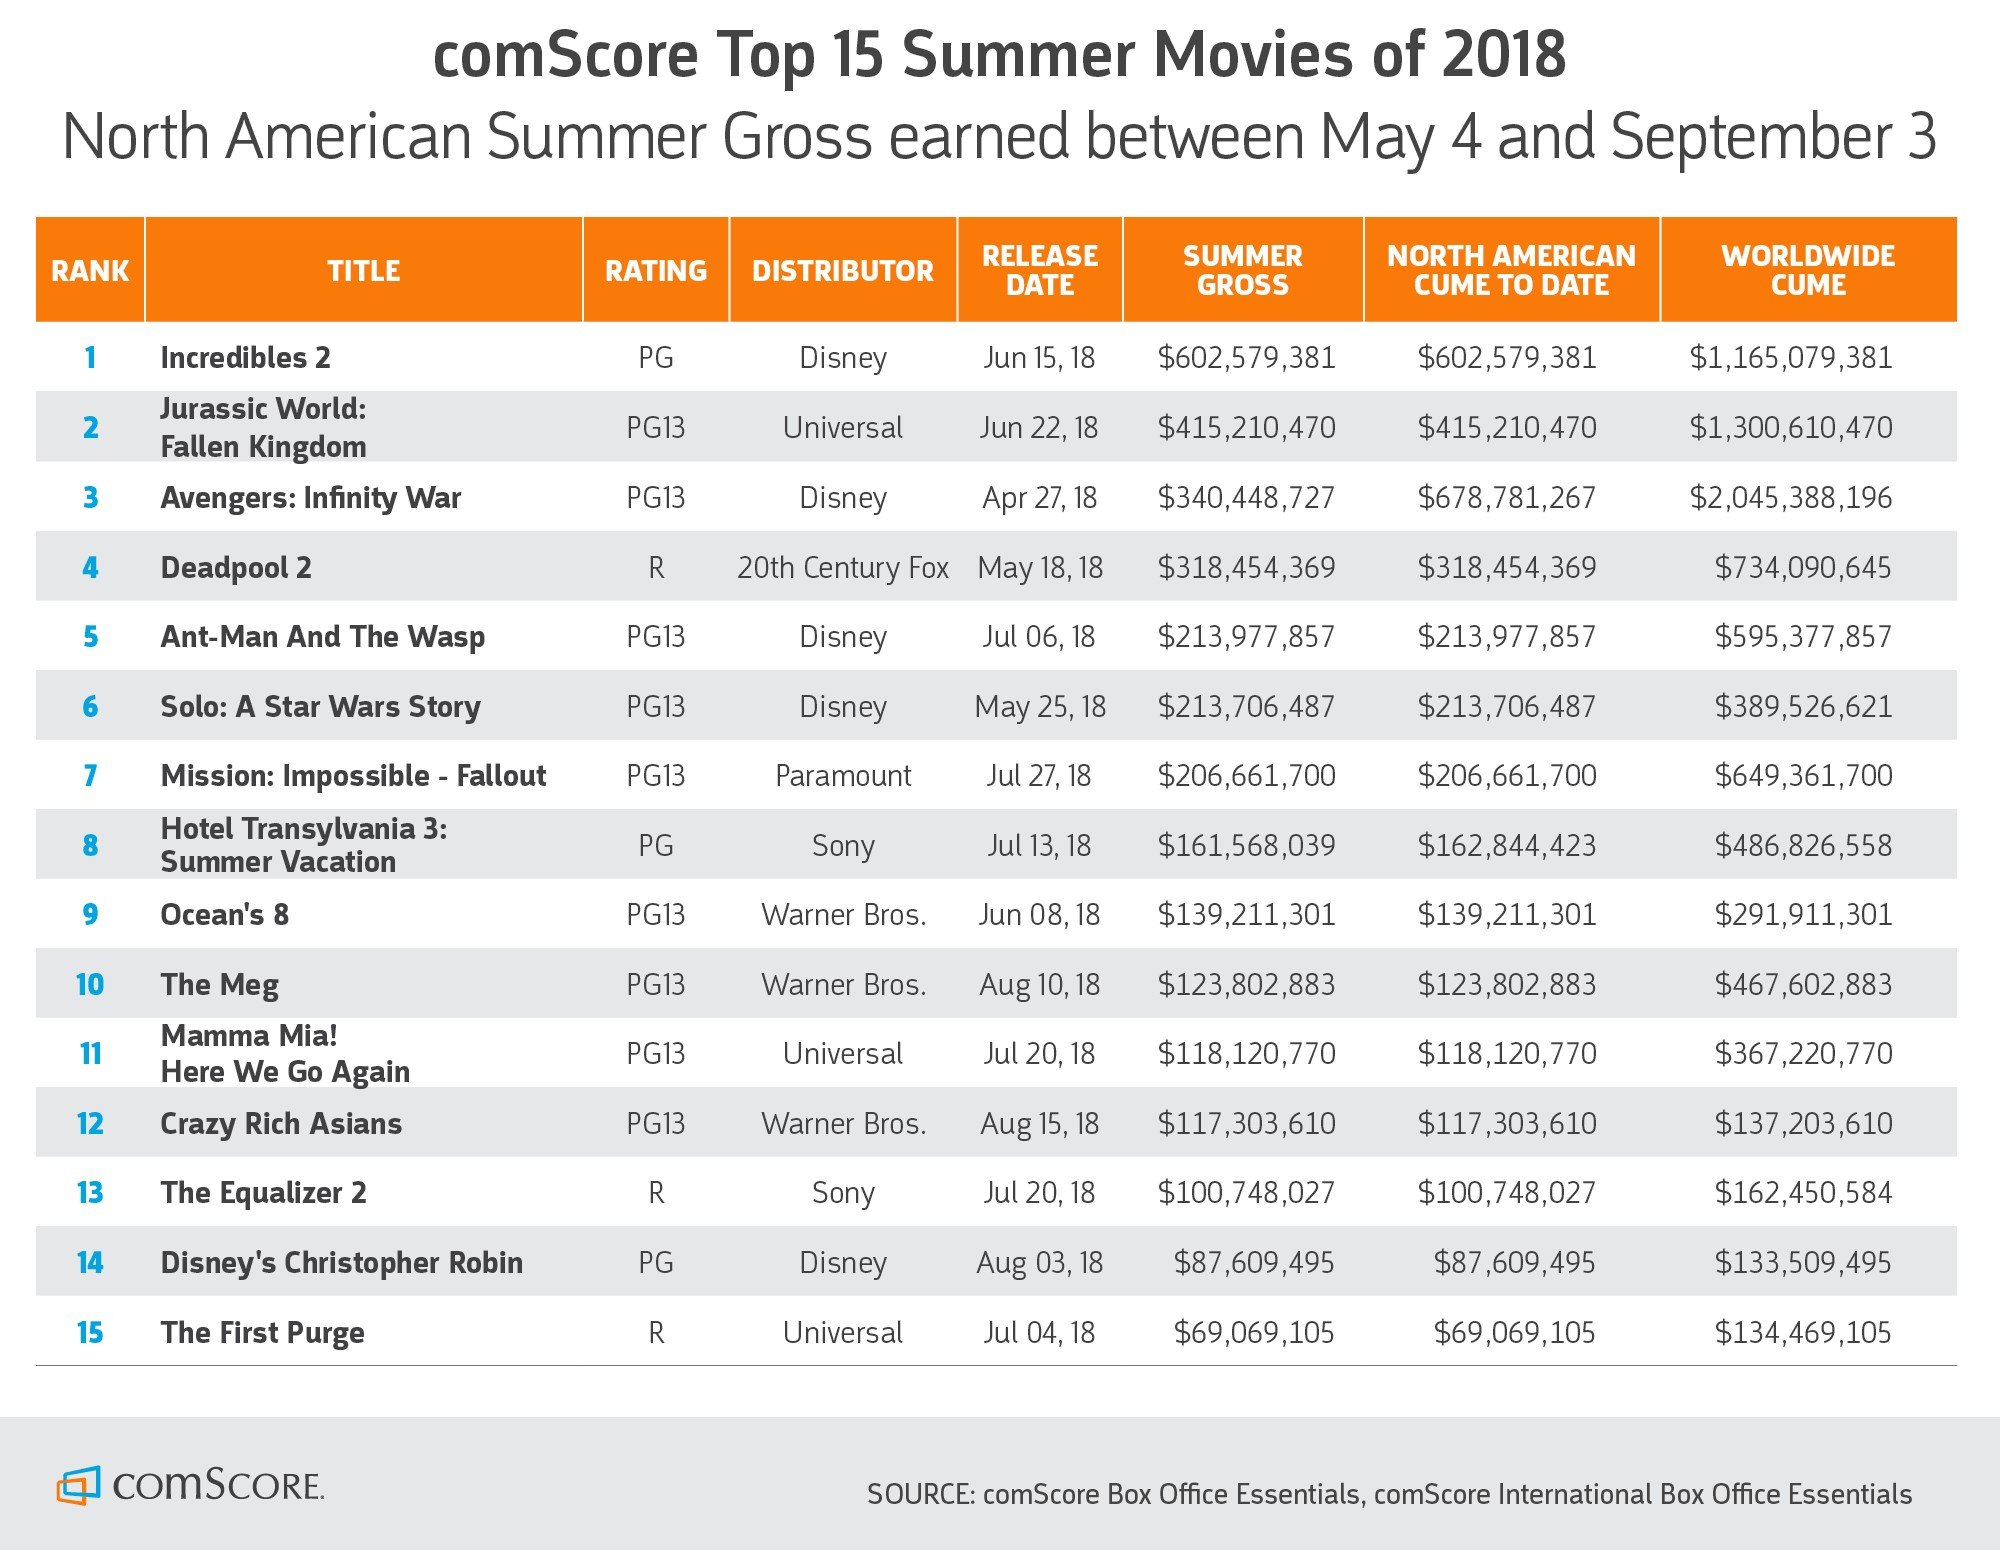 Comscore Top 15 Summer Movies of 2018